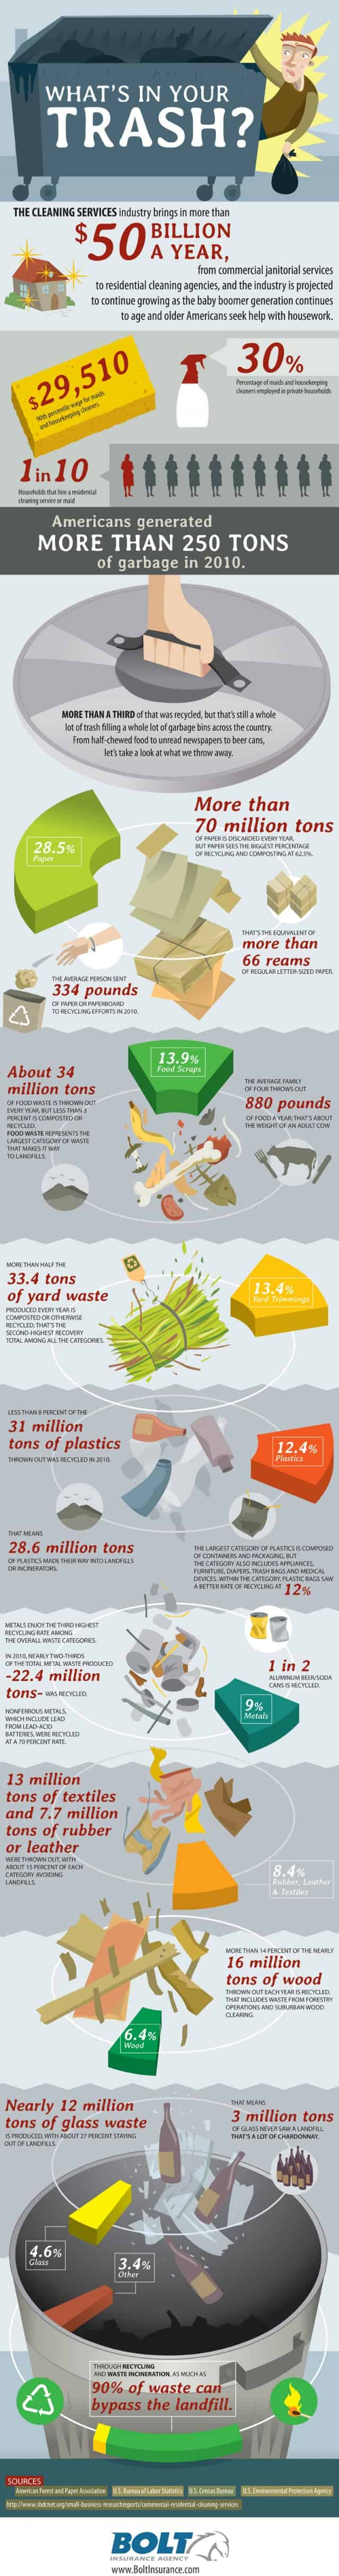 What's In Your Trash Infographic